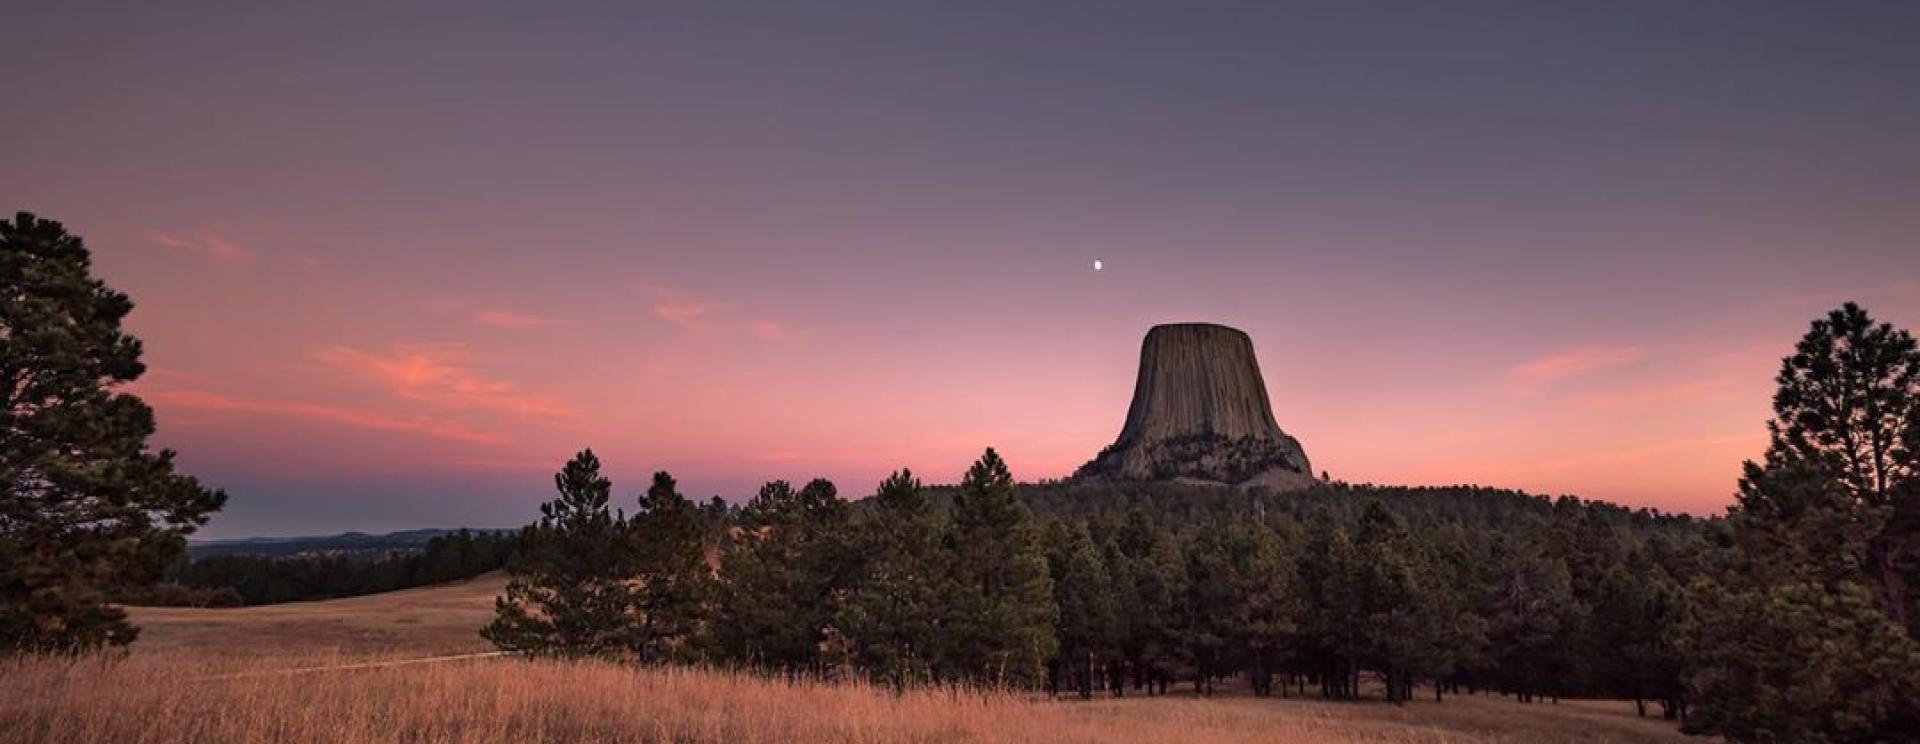 The 5 Most Remarkable Photos of the Black Hills and Badlands in October 2019